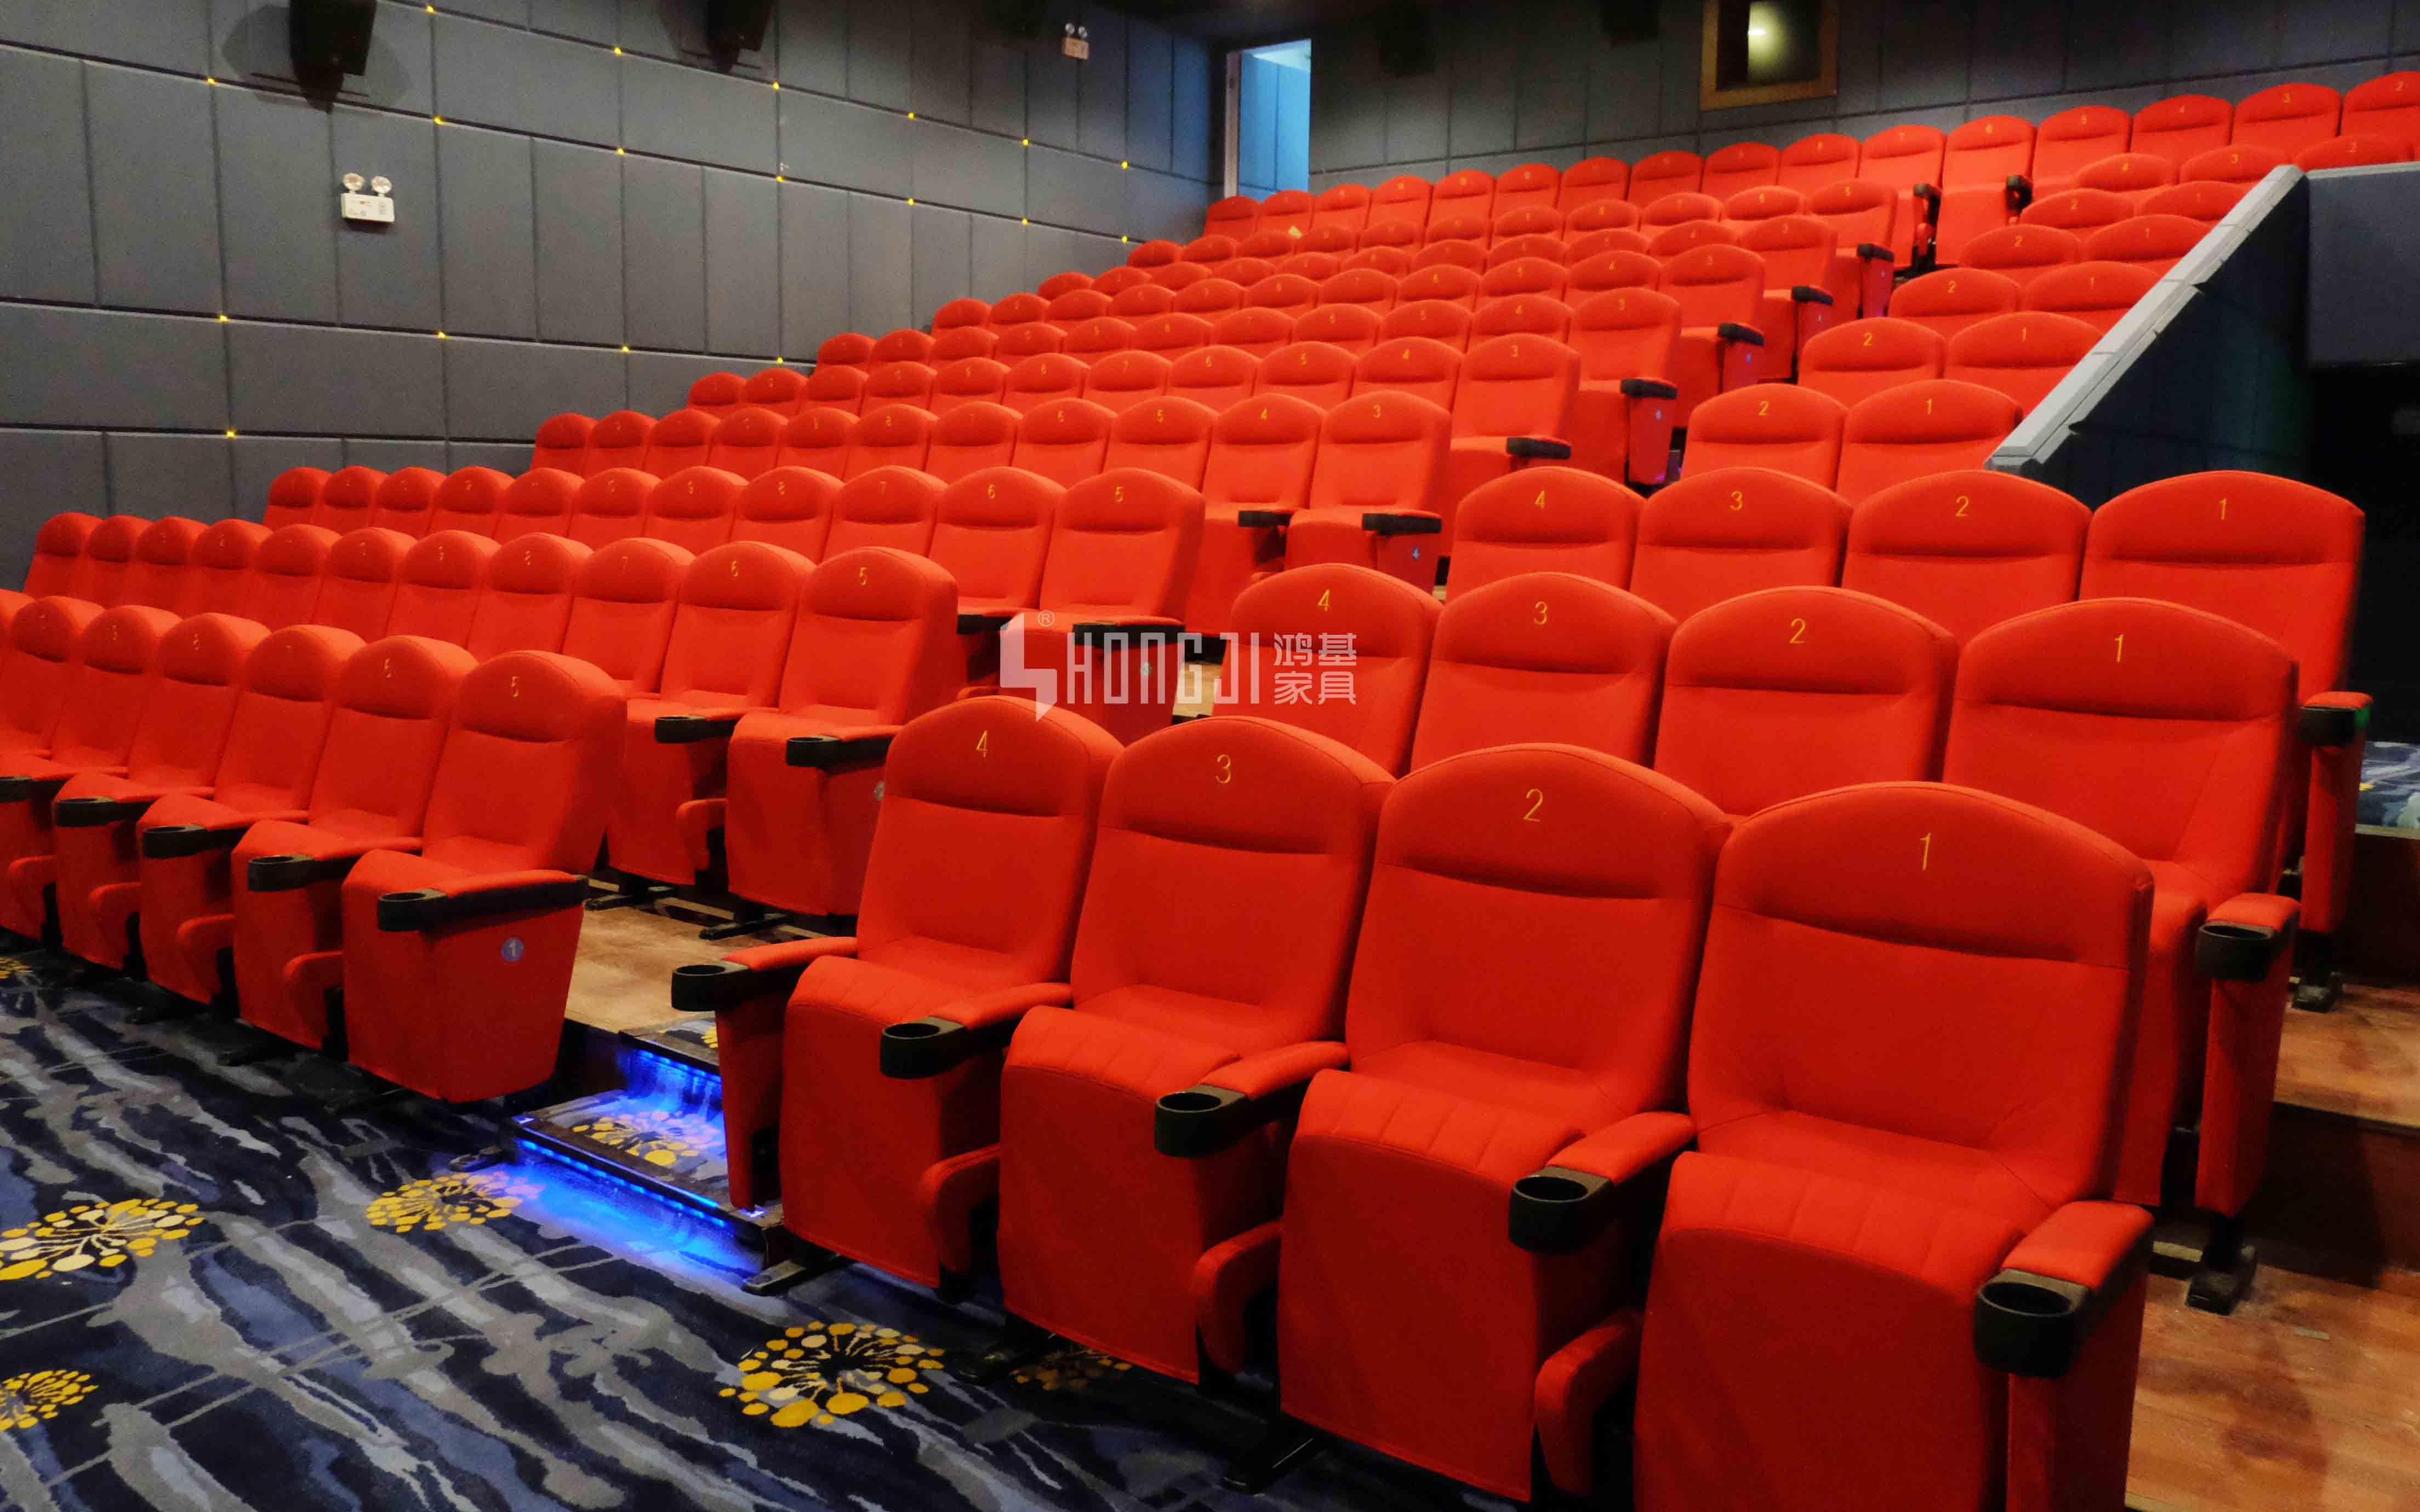 HONGJI hj9926 theater room recliners competitive price for sale-14